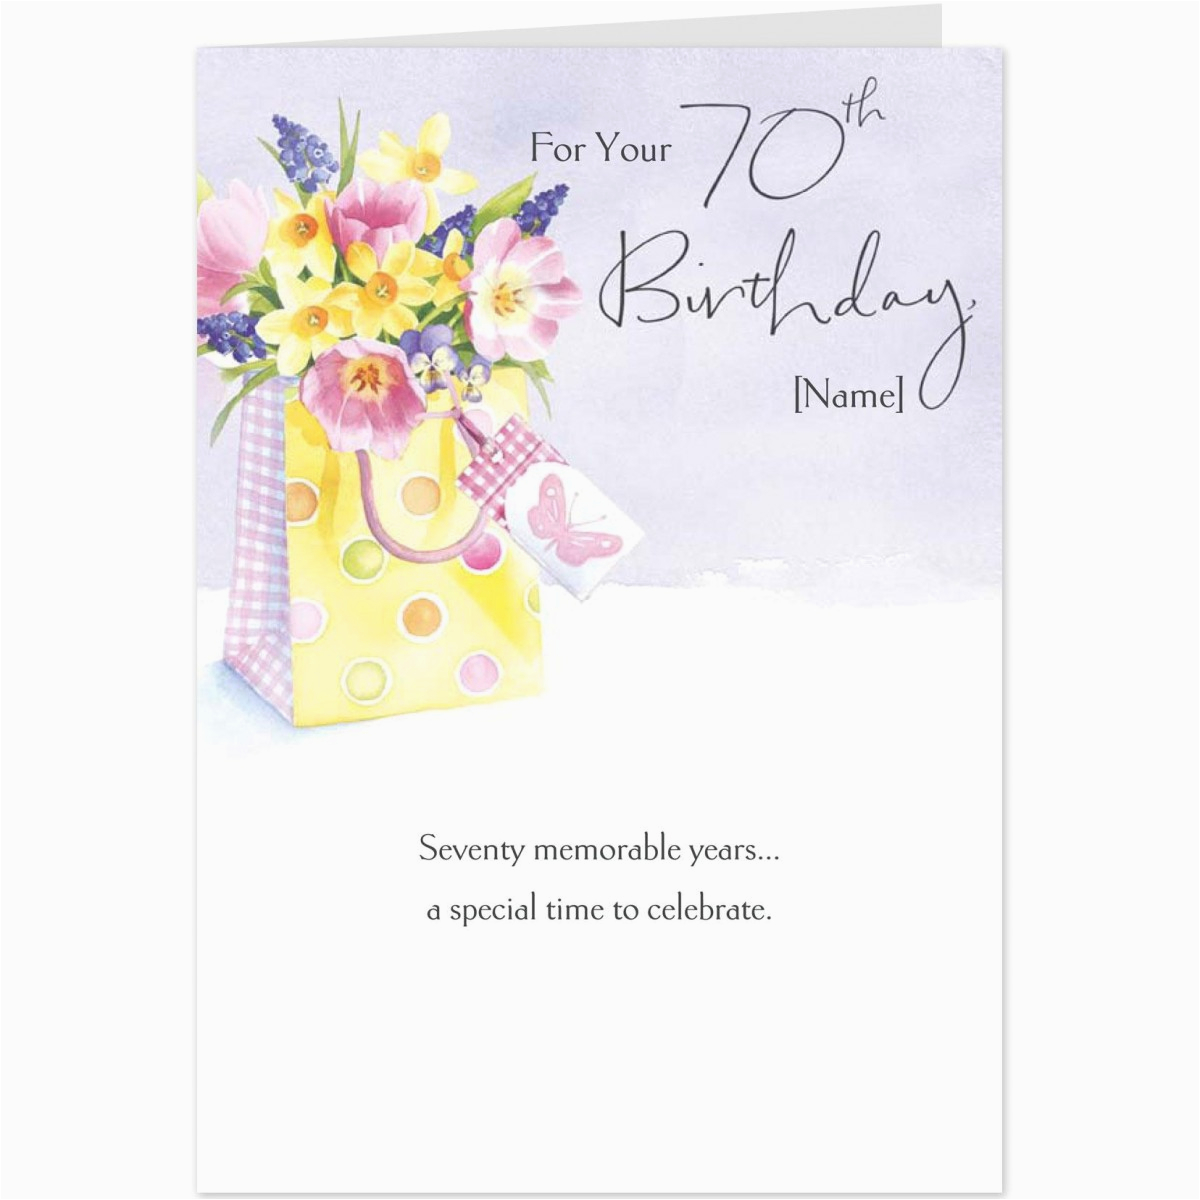 Free Printable 70th Birthday Cards Printable 70th Birthday Cards Card Design Ideas